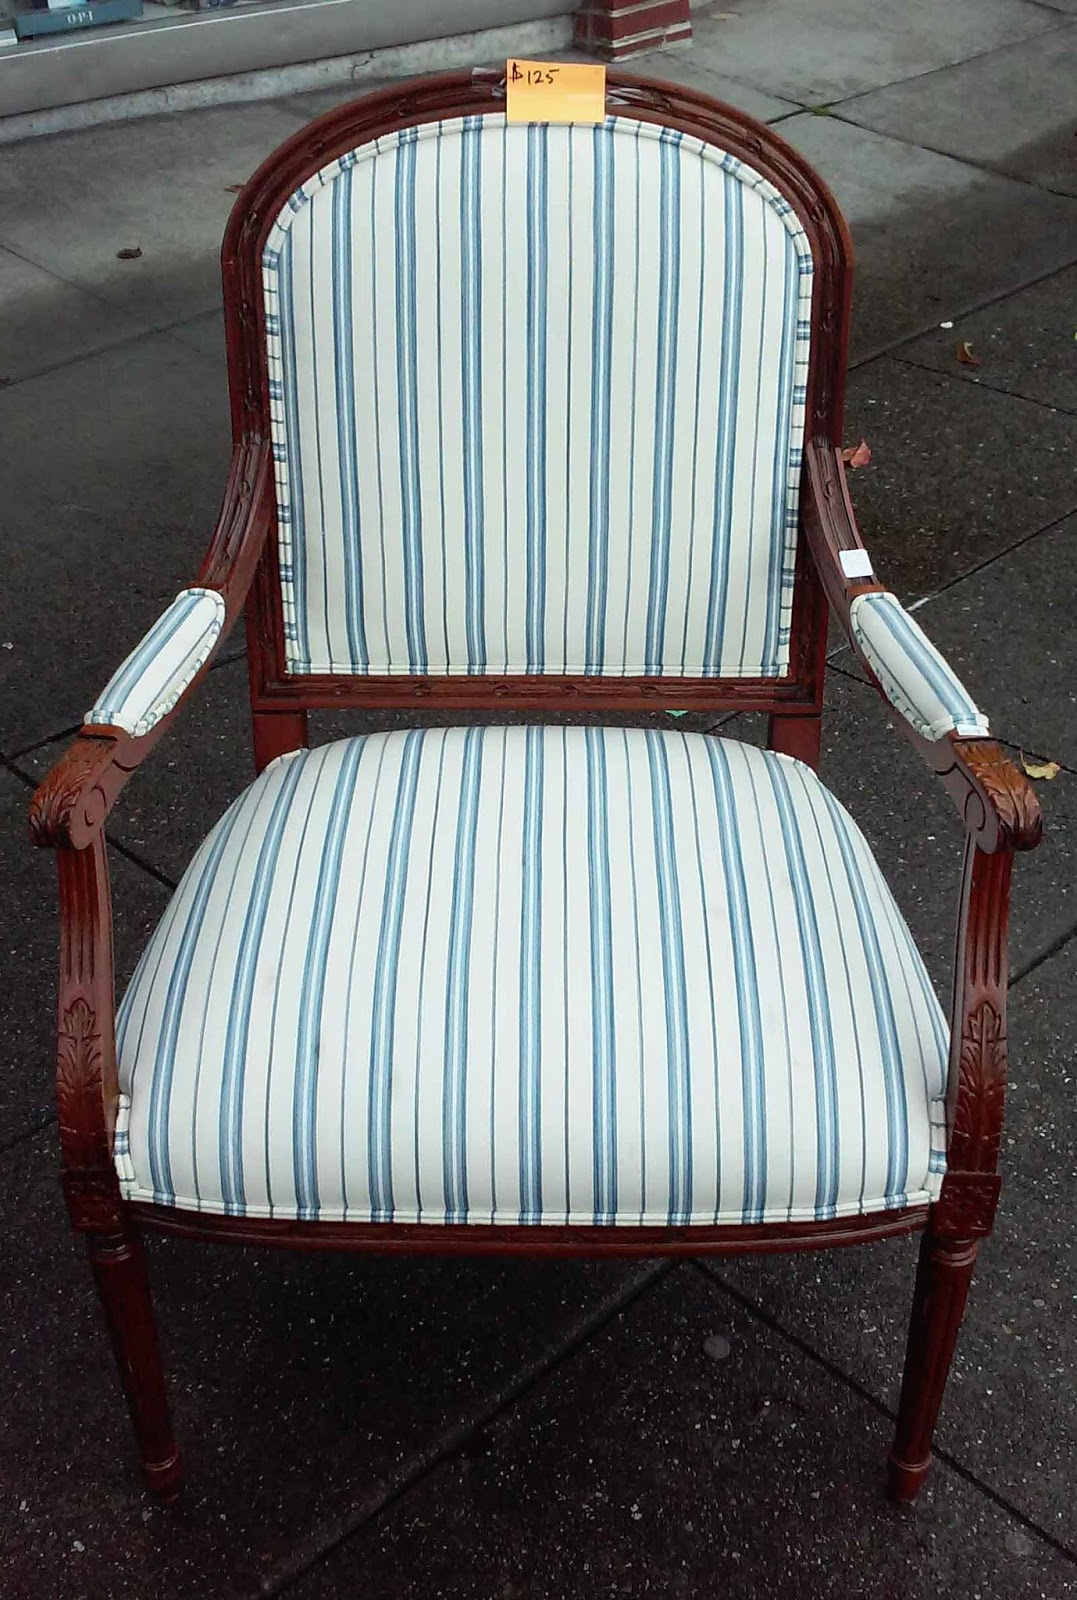 blue and white striped chair live electric execution uhuru furniture collectibles sold